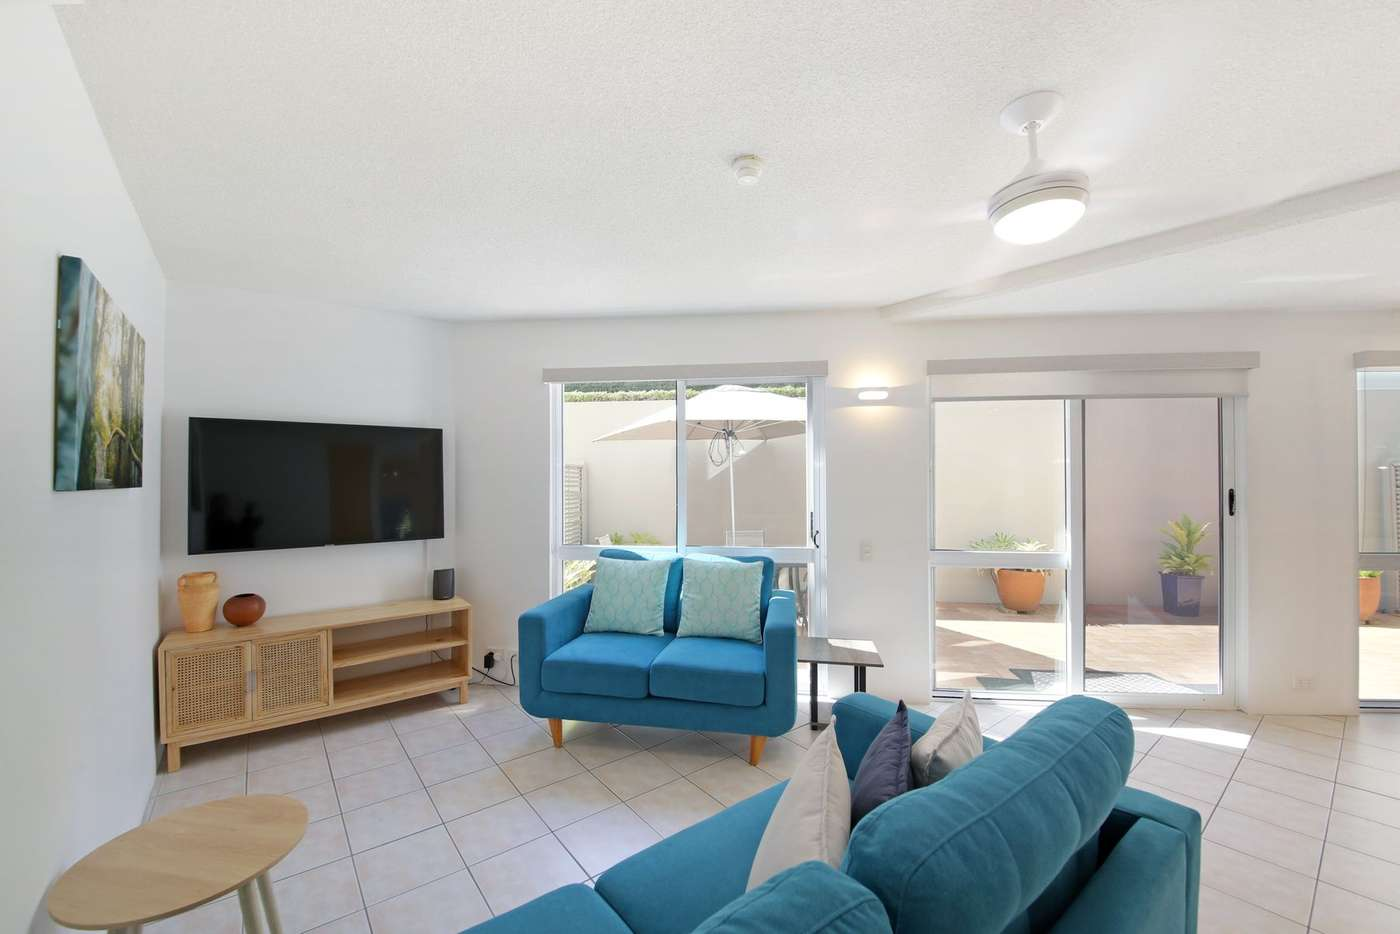 Main view of Homely apartment listing, 2/221-227 Gympie Terrace, Noosaville QLD 4566